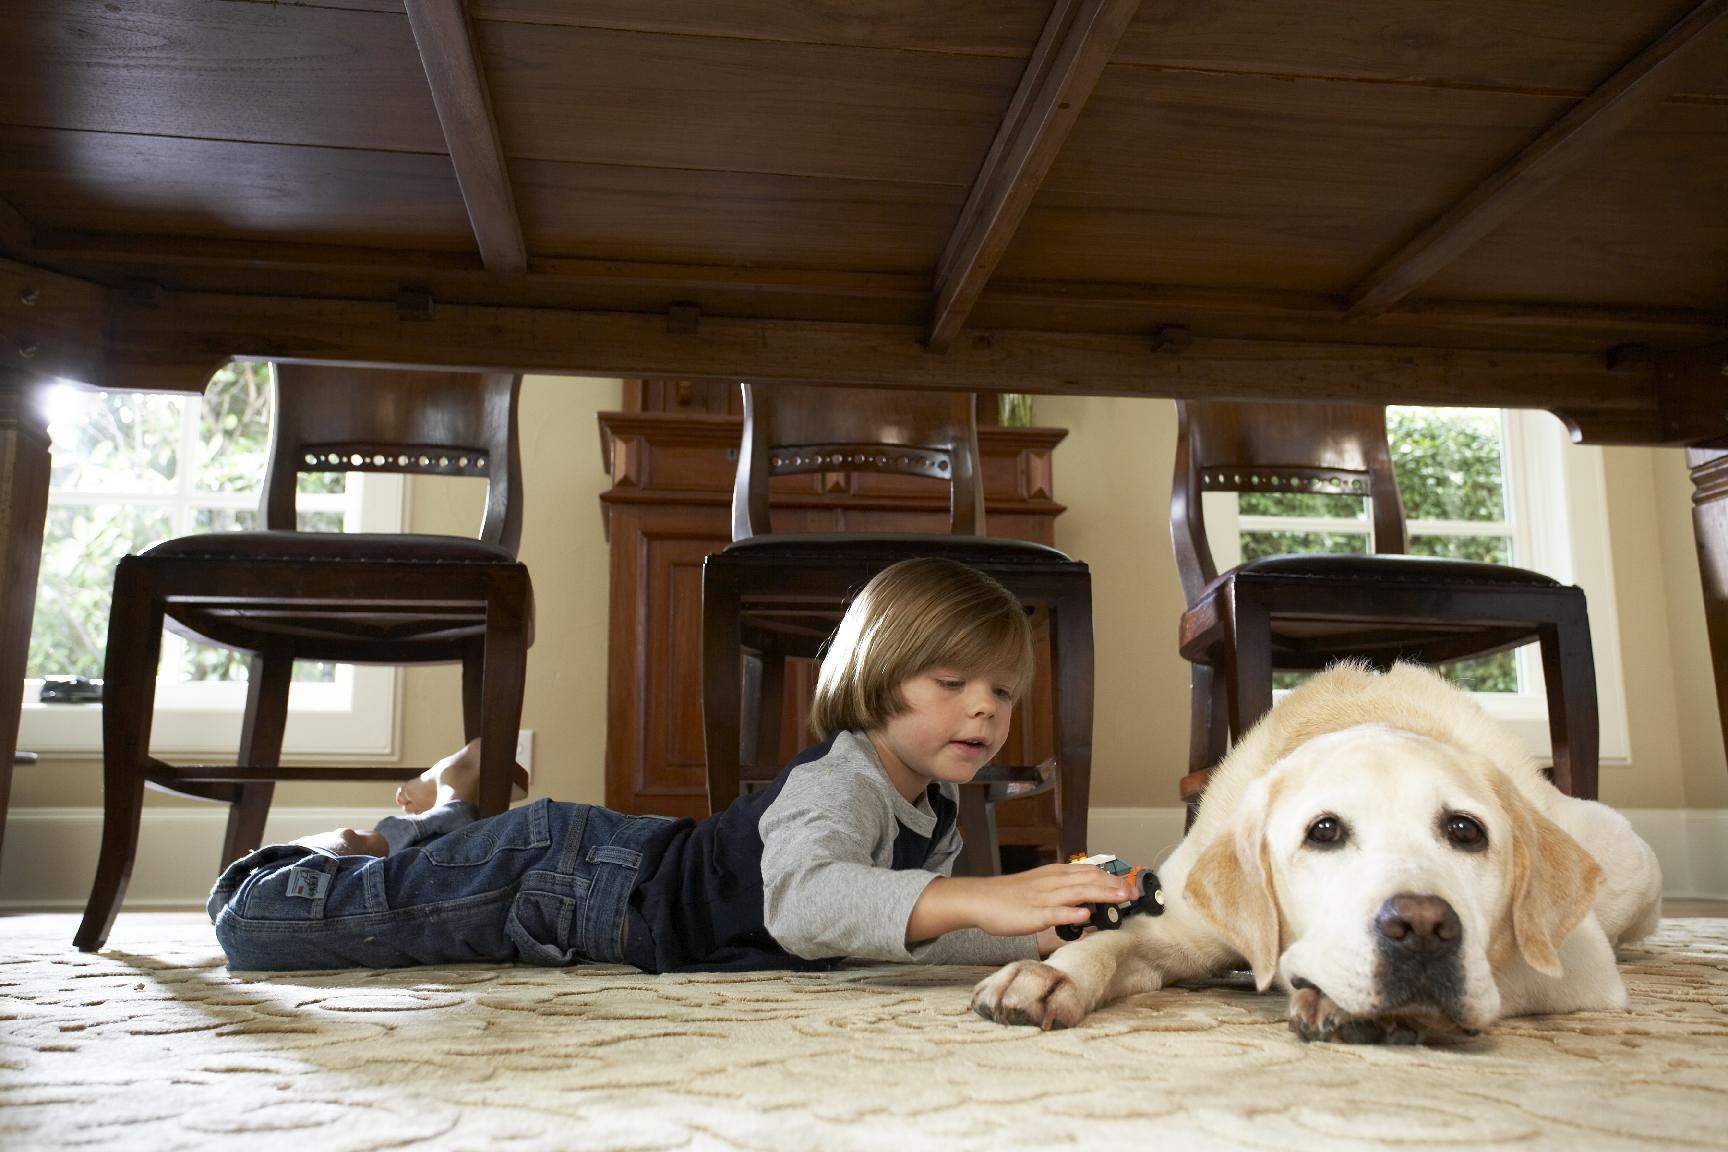 boy and dog playing